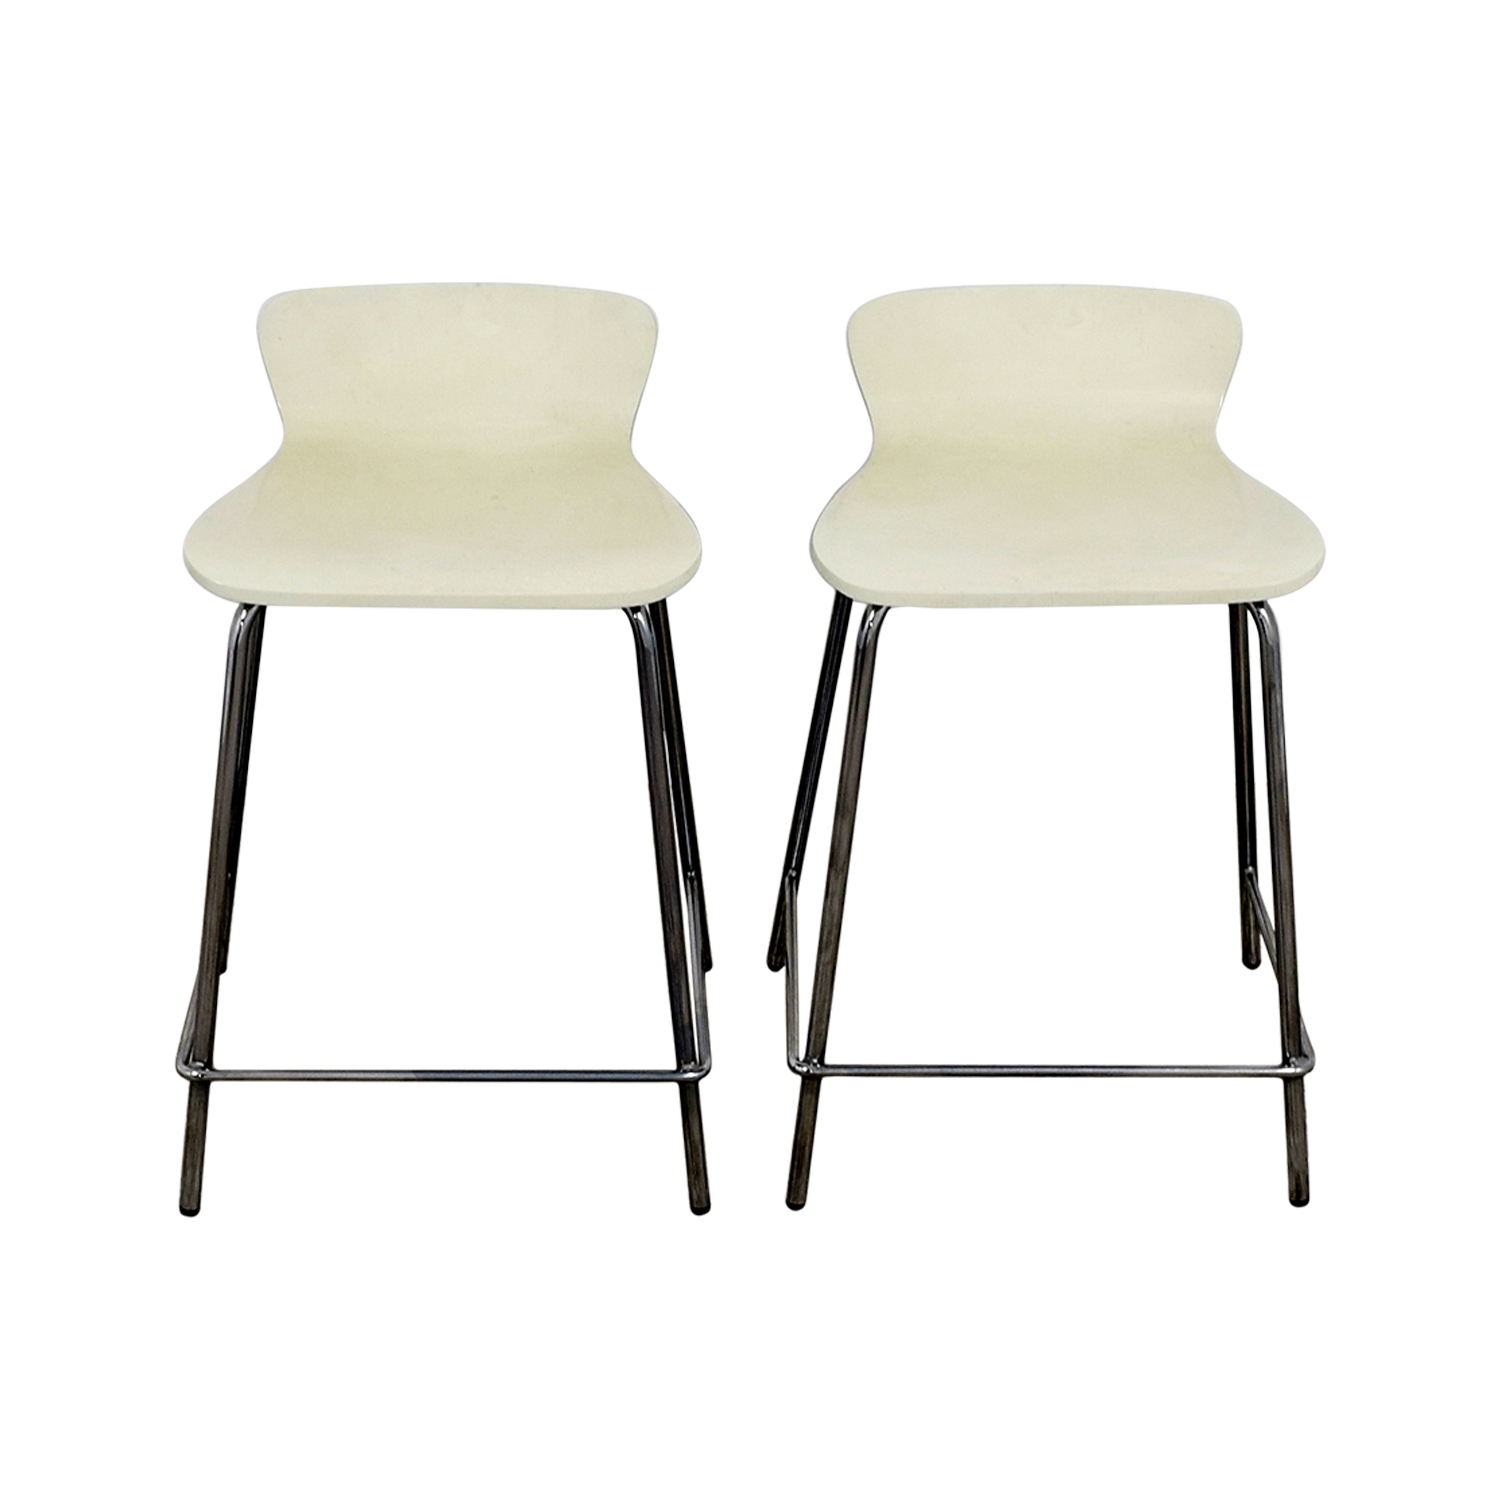 Crate & Barrel Crate & Barrel Felix White Counter Stools discount